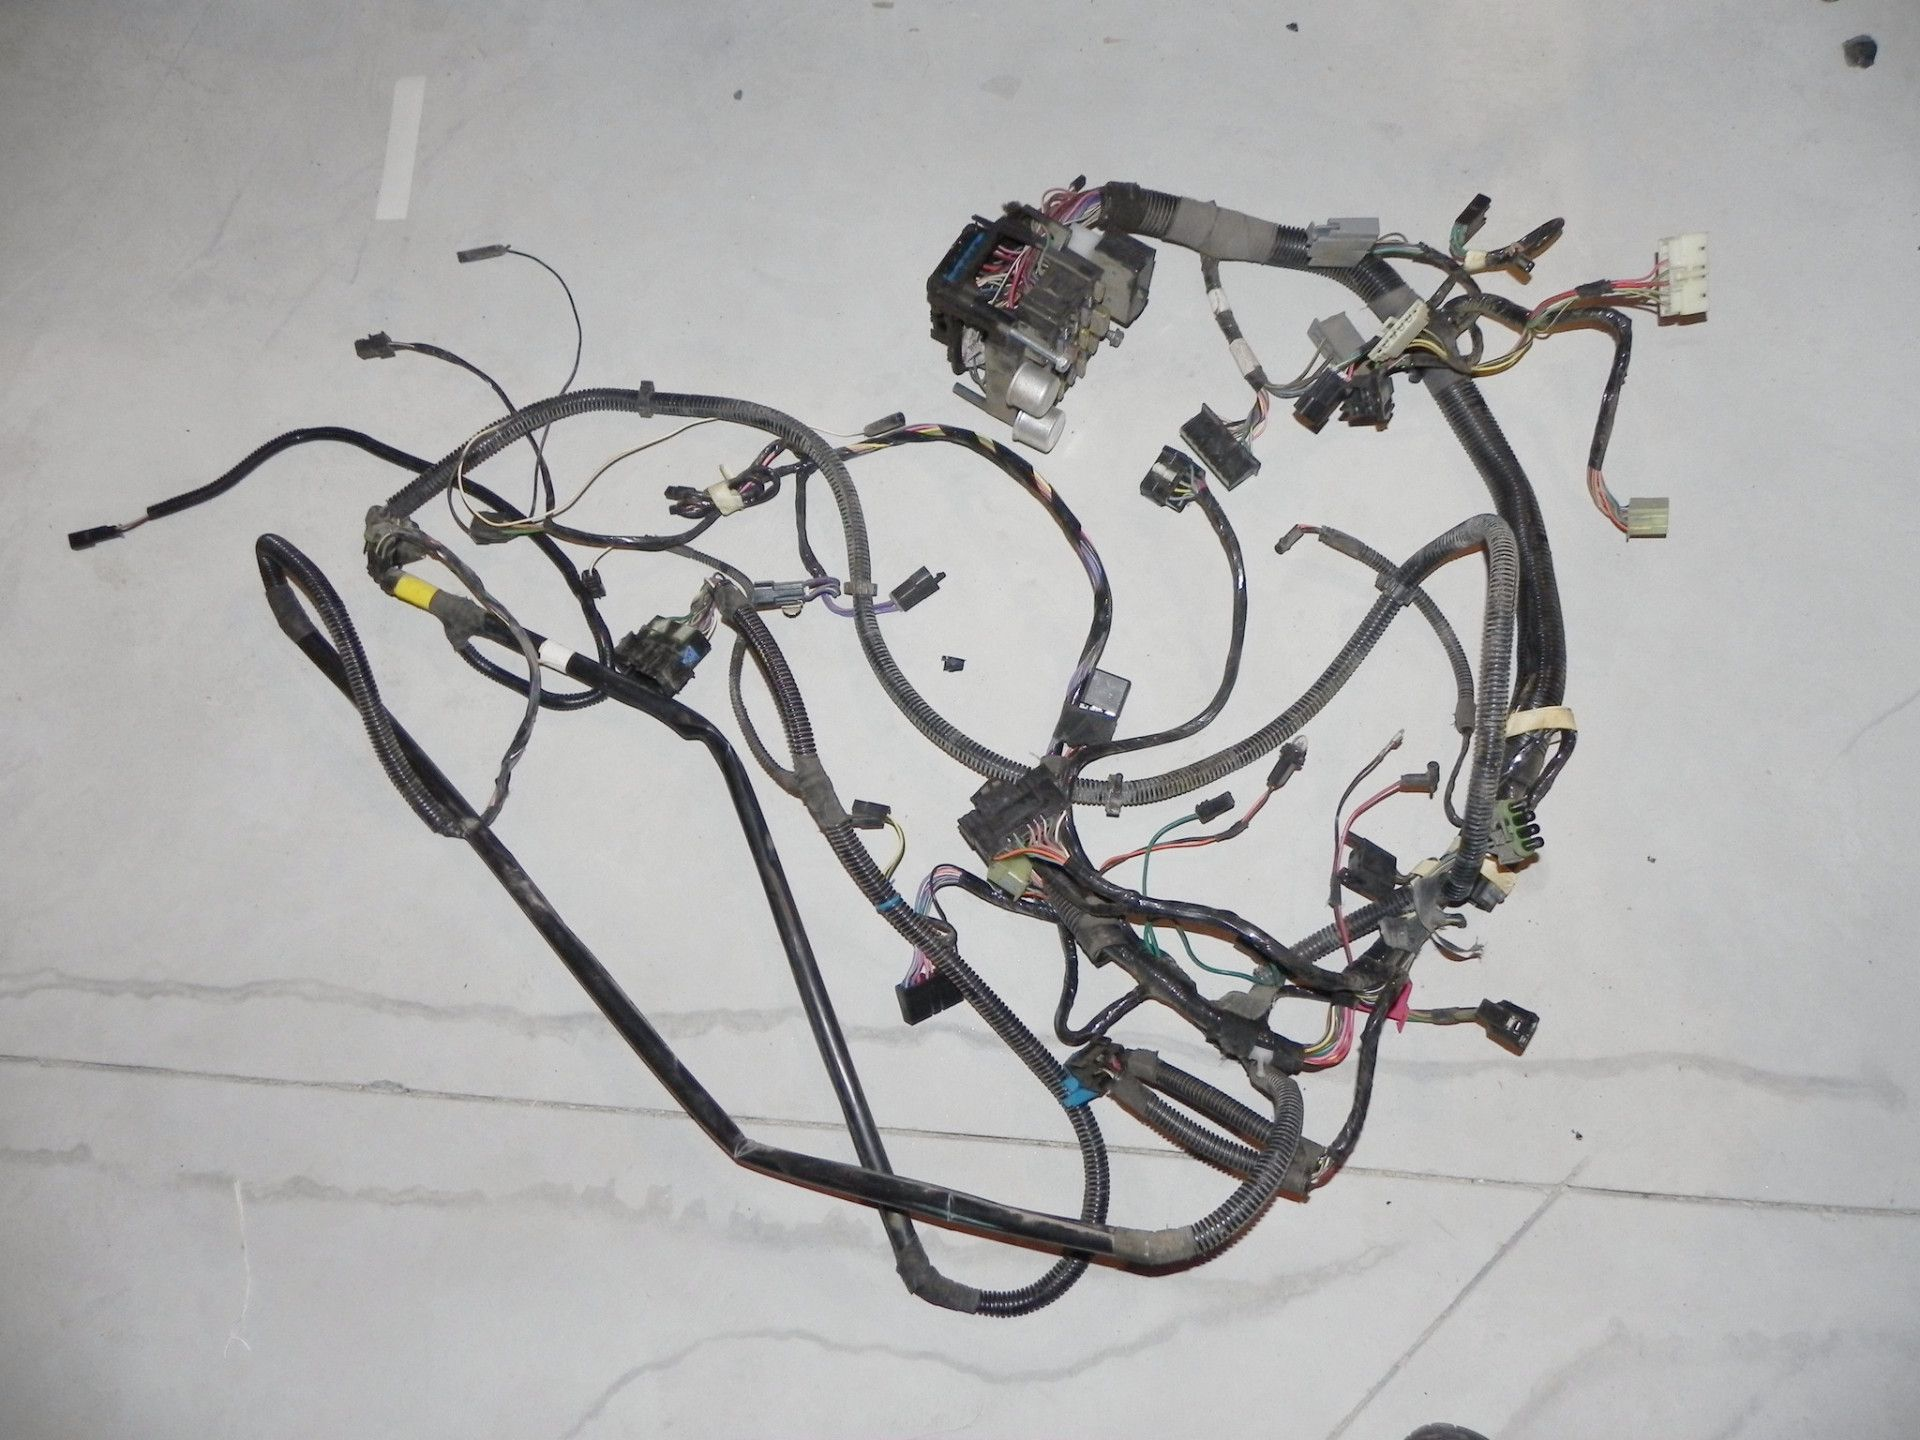 1ac84ff66da6ba86e03de6b4e4edac74 jeep wrangler yj interior under dash wiring harness 92 95 jeep 1992 jeep wrangler wiring harness at readyjetset.co